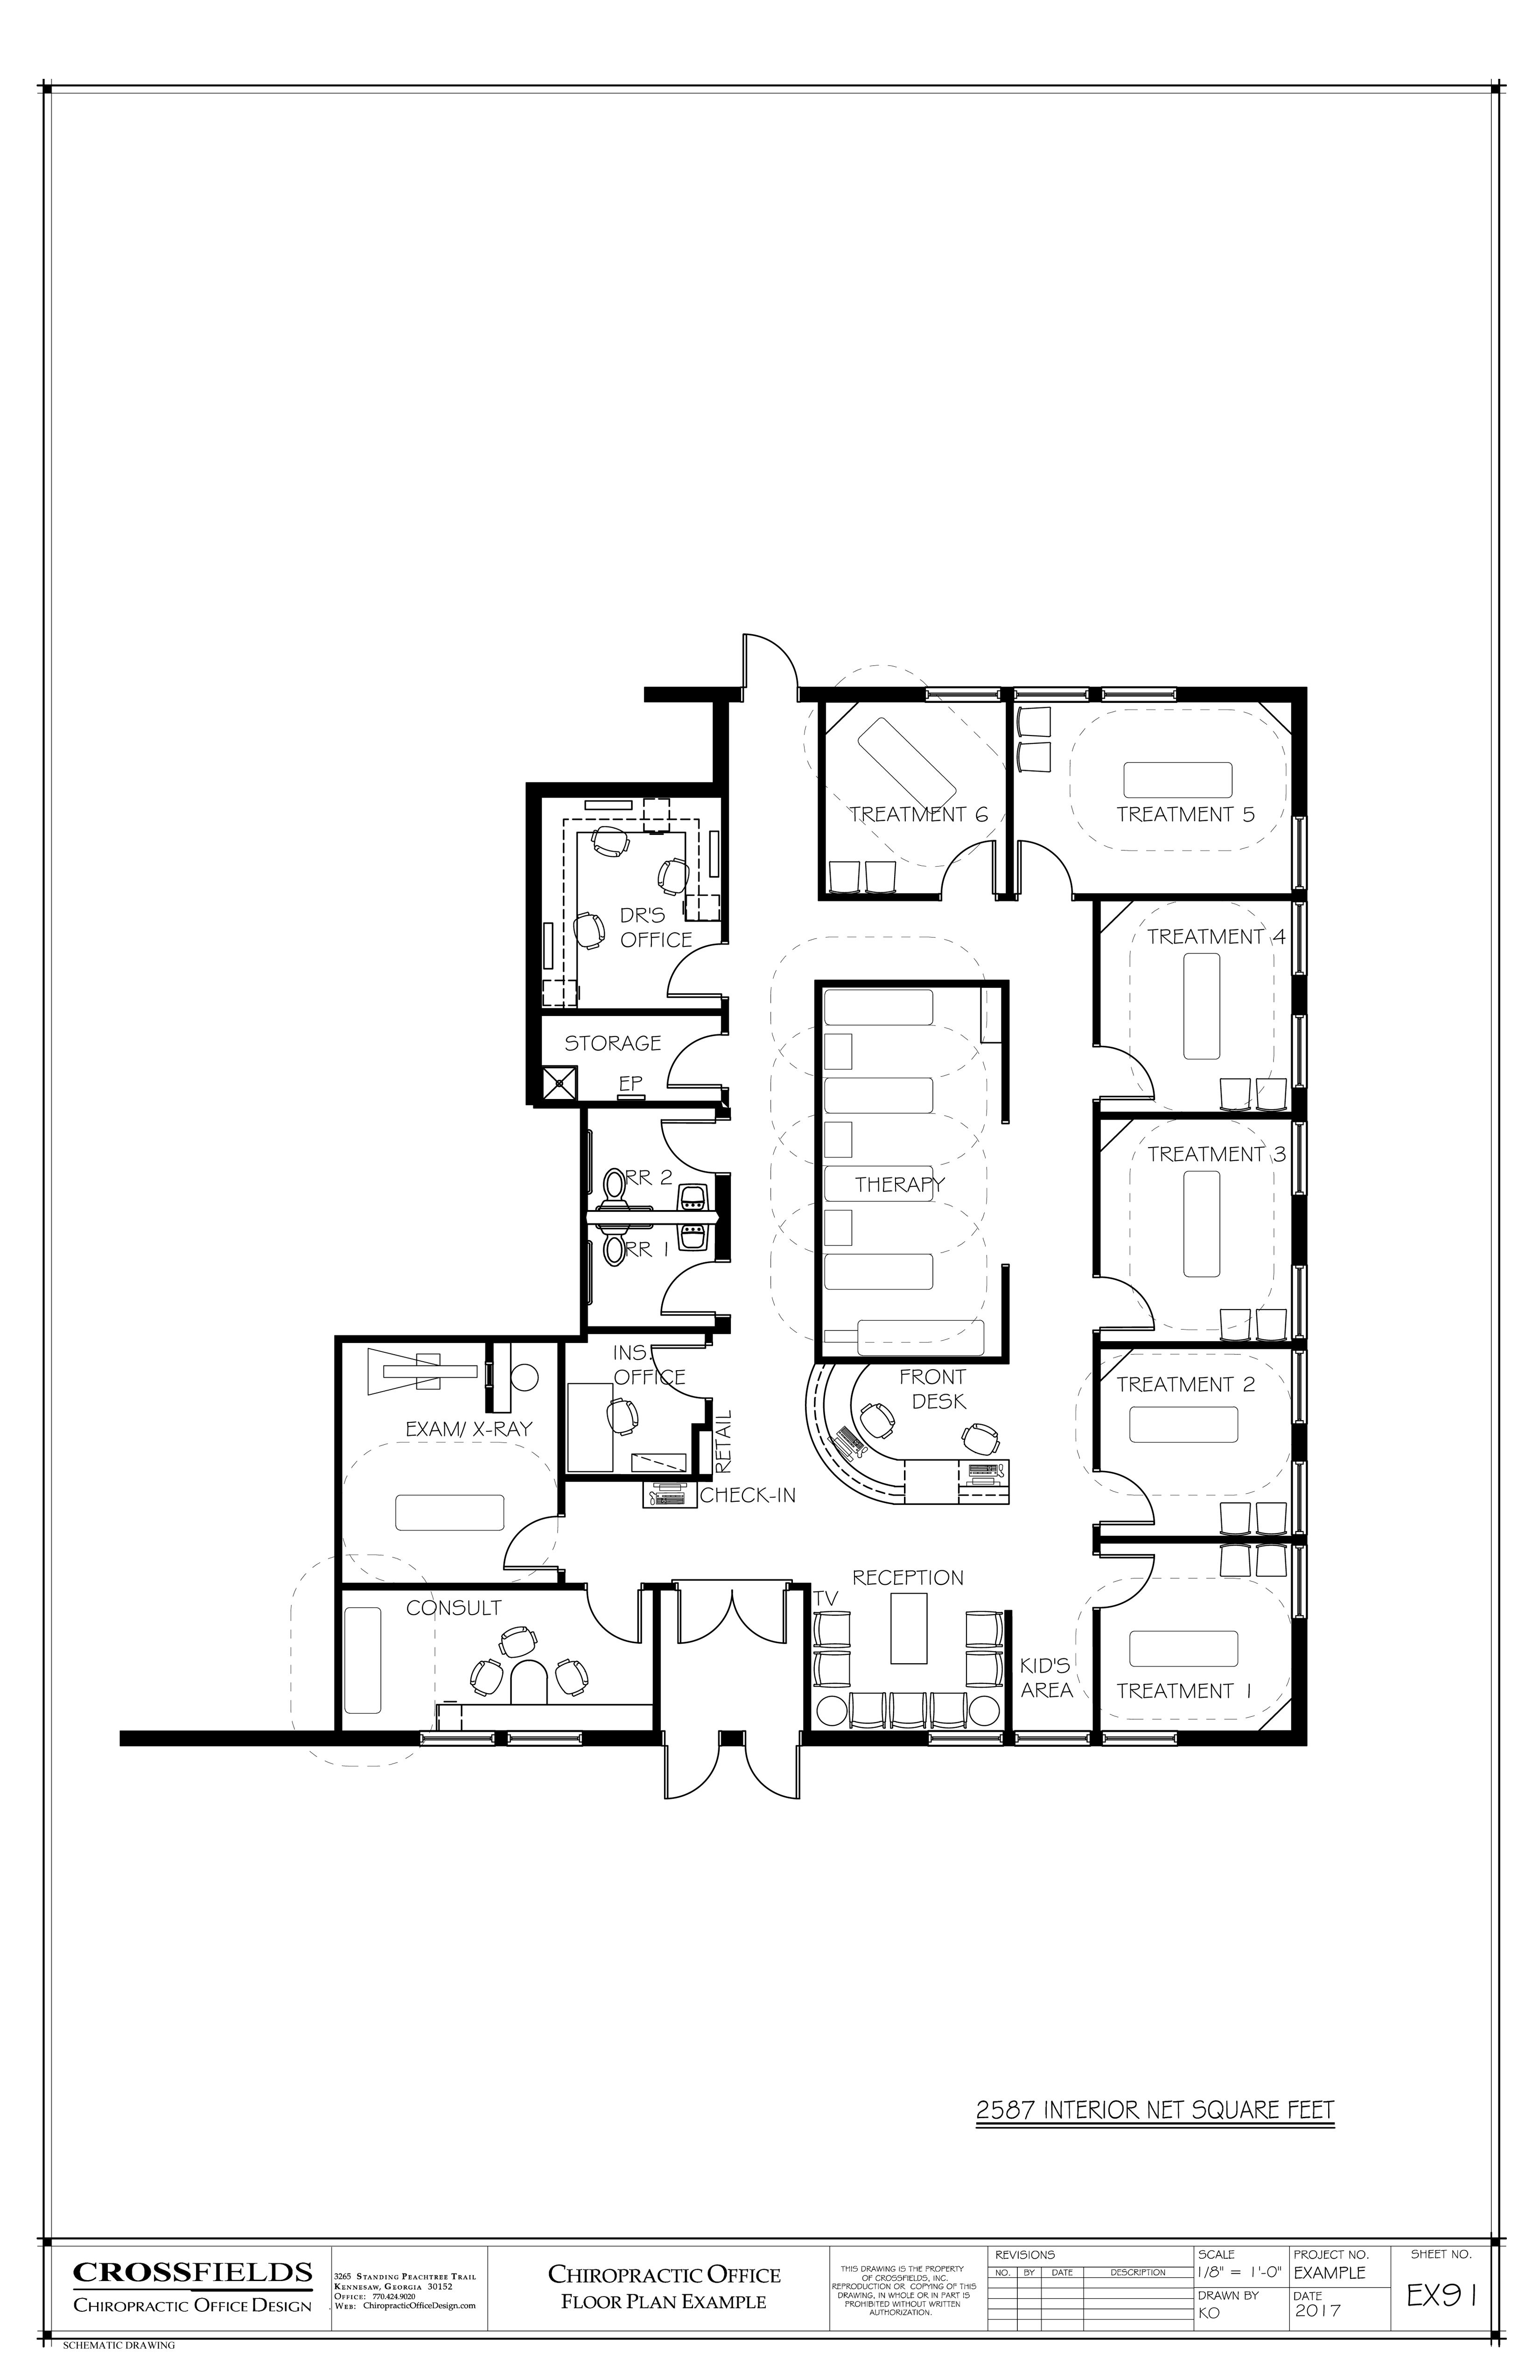 Example of Chiropractic Floor Plan, 6 Treatment Rooms